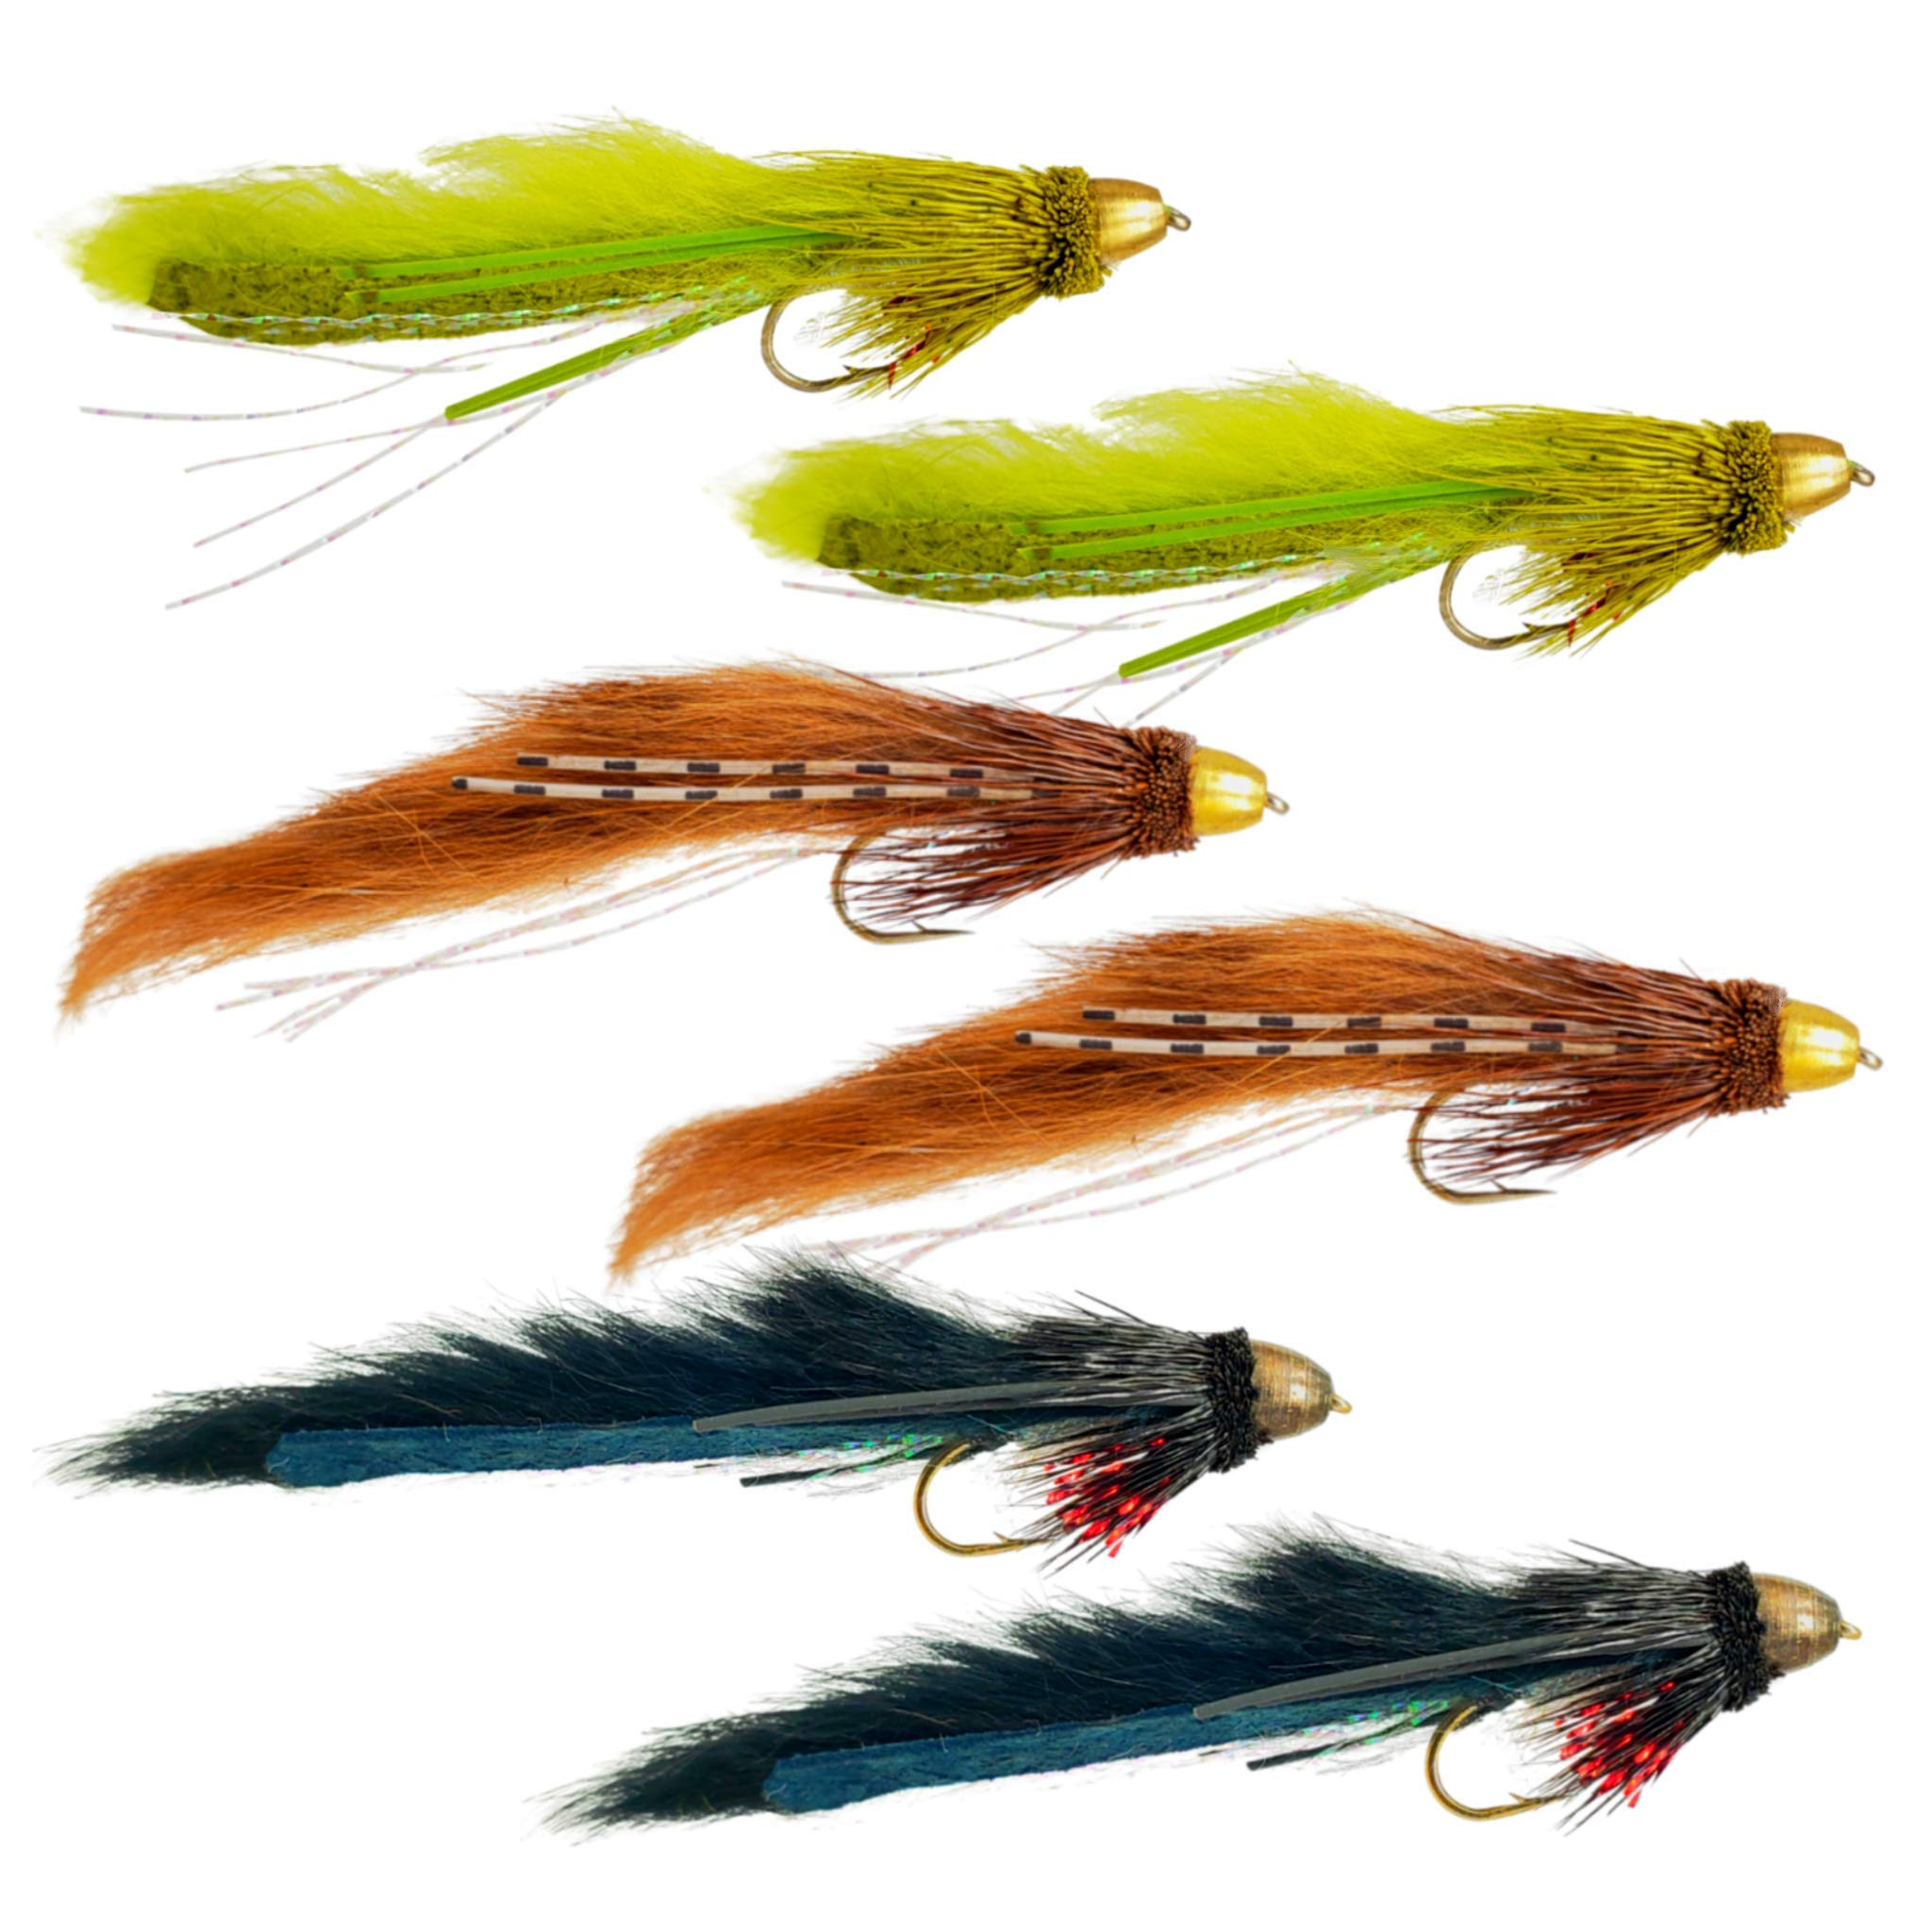 The Fly Crate Muddy Bunny Streamer Assortment | Fly Fishing for Trout Bass Pike | Size 8 by The Fly Crate